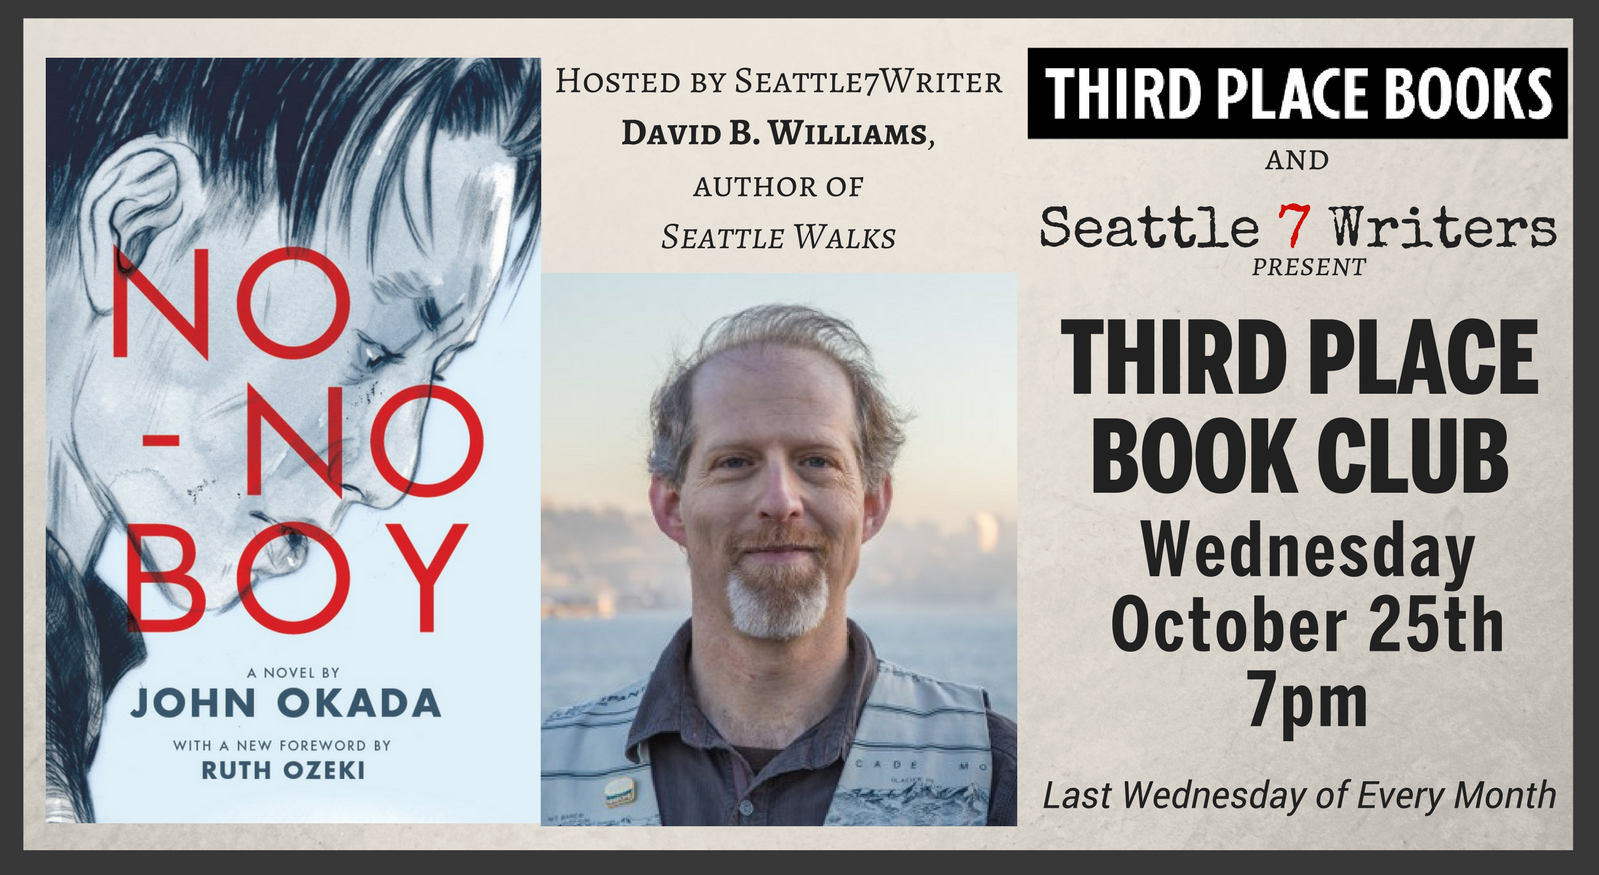 Seattle7Writers' Book Club with David B. Williams, reading No-No Boy